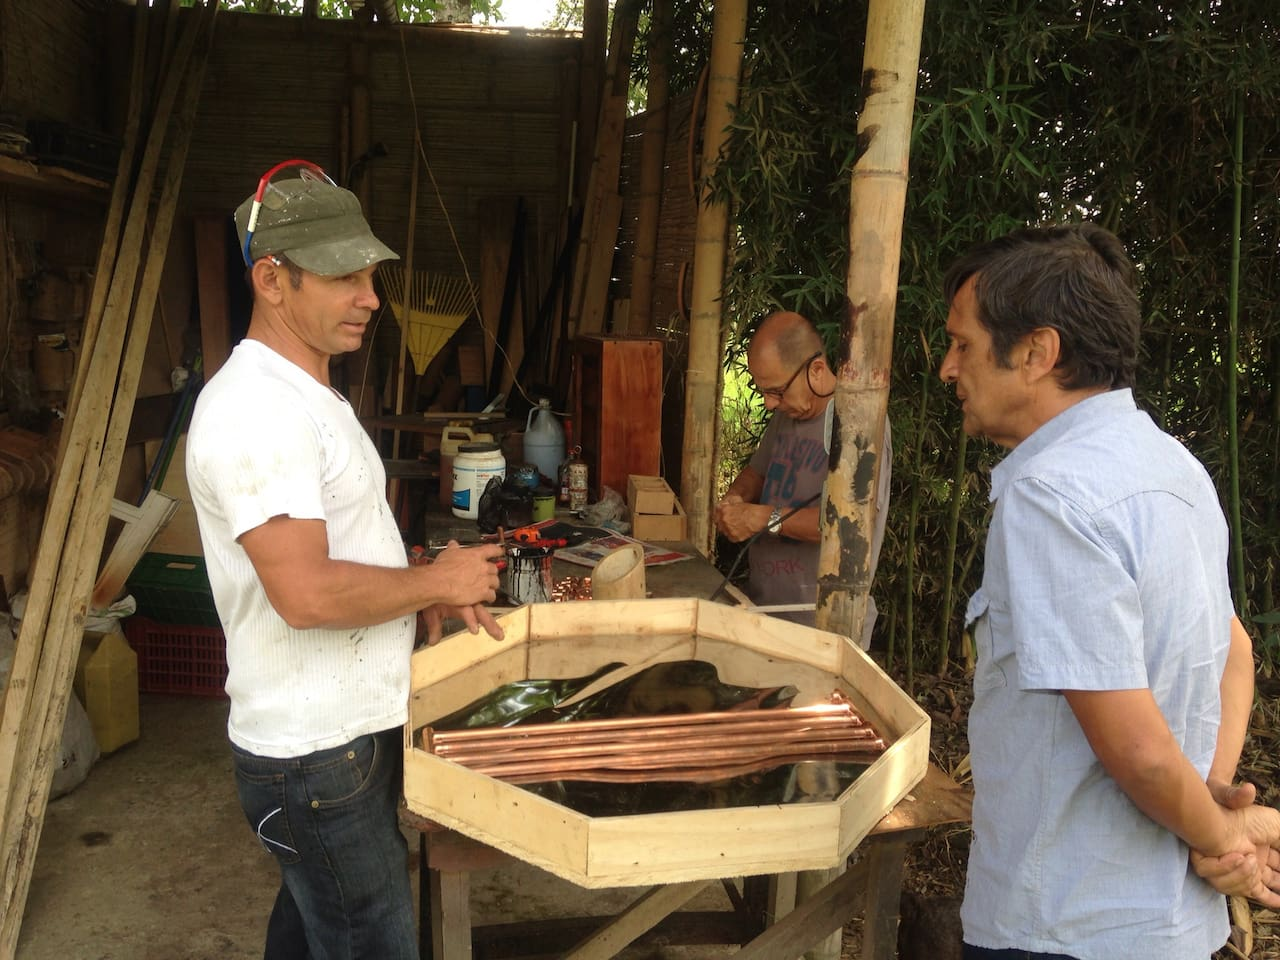 constructing a passive solar water heater for the outdoor shower